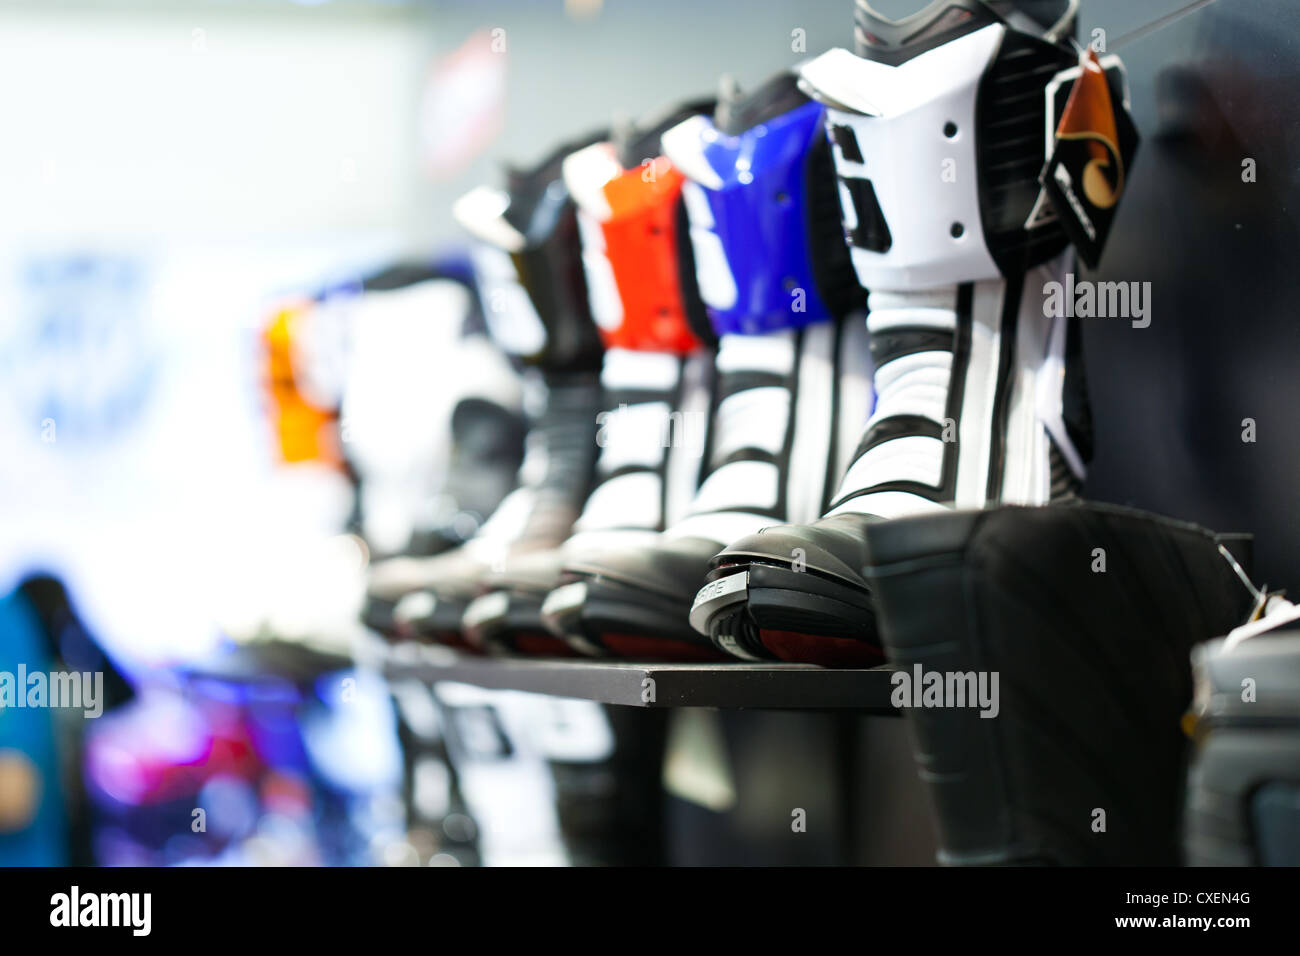 Motorcycle boots in assortment in shop - Stock Image